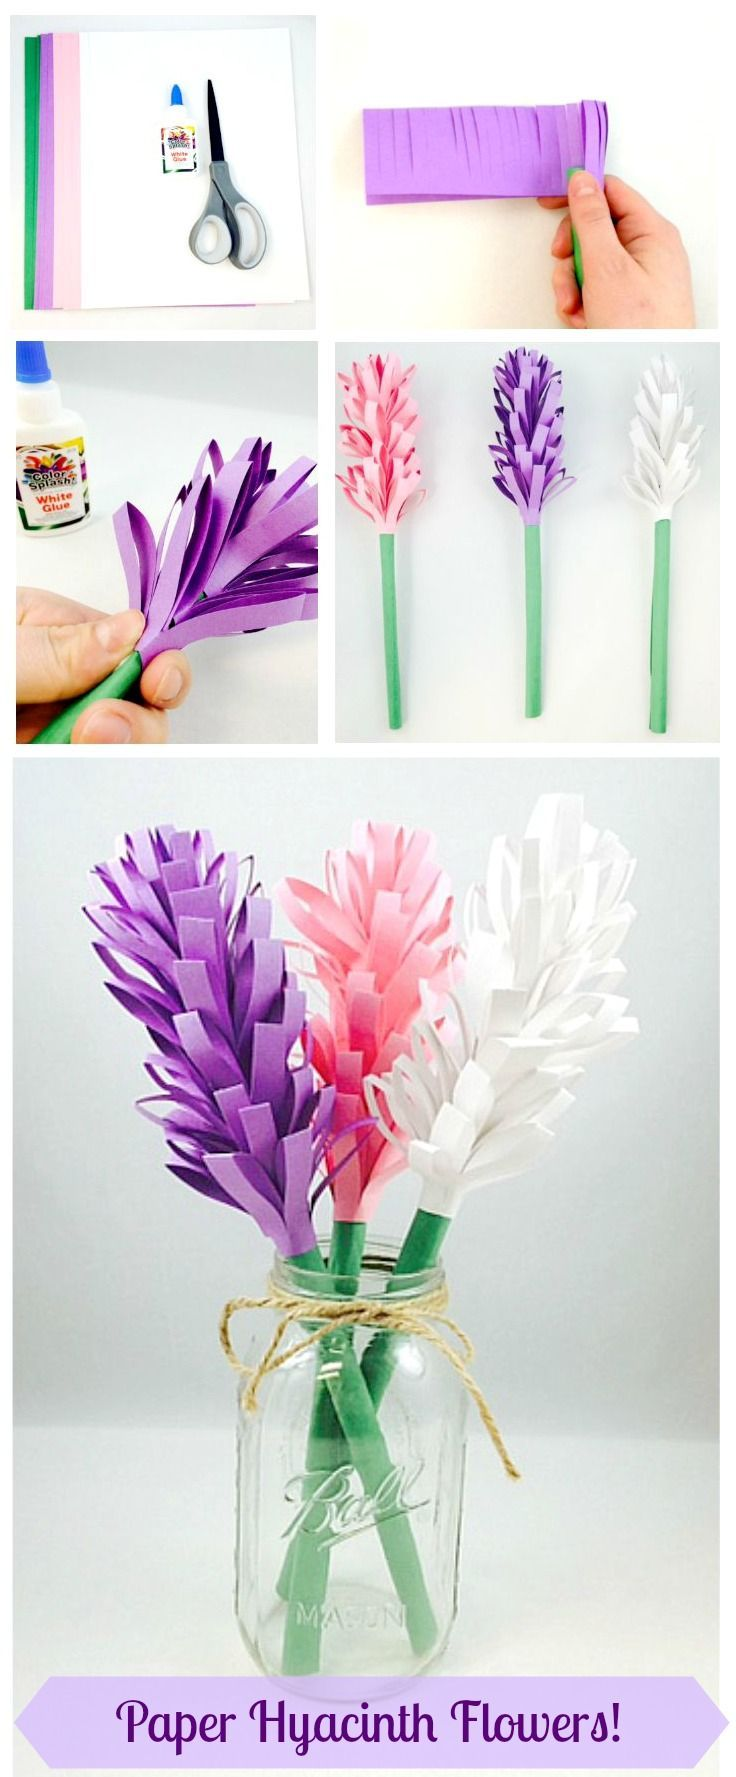 Small flowers for crafts - Easy Paper Hyacinth Flowers